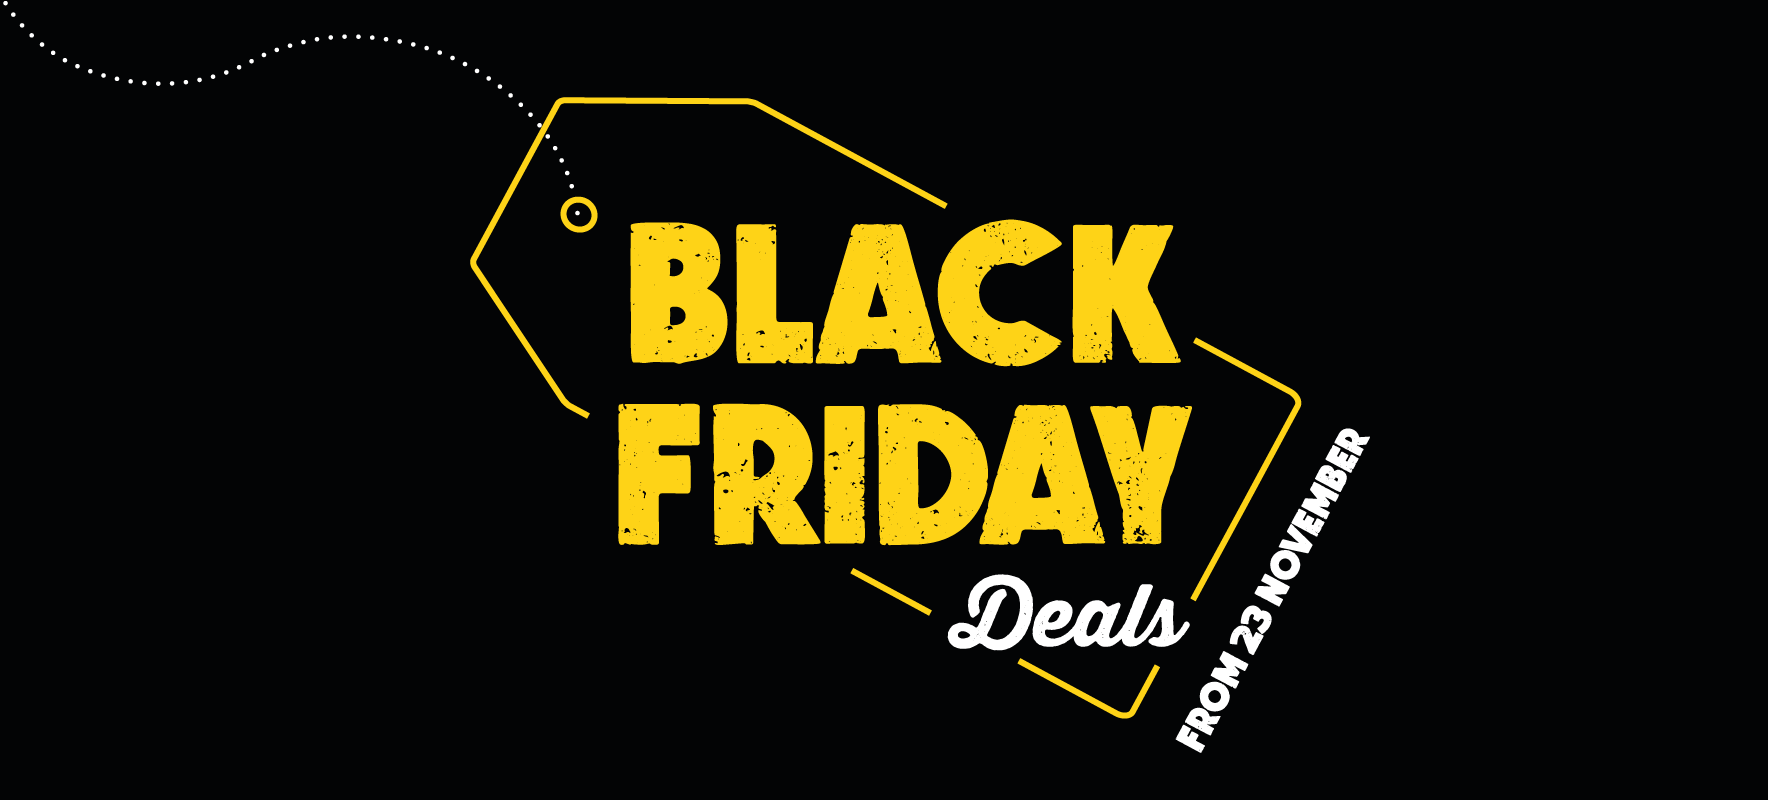 BLACK FRIDAY DEALS 2020 - COMING SOON!